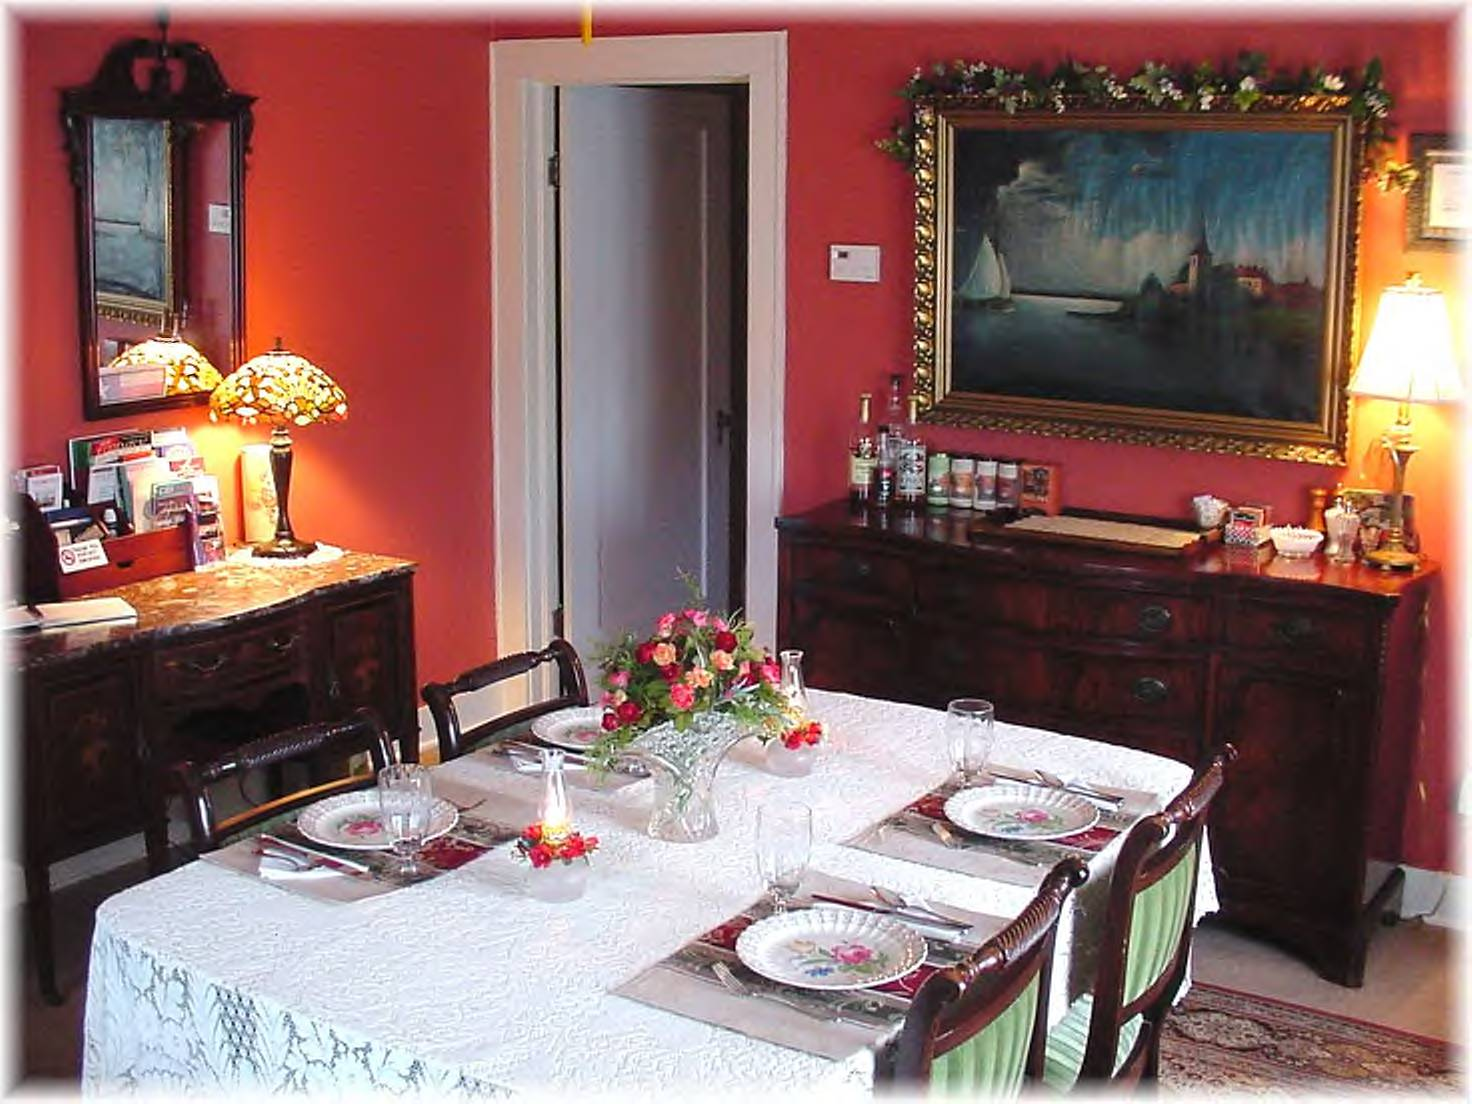 wallpaper in dining room photo - 2